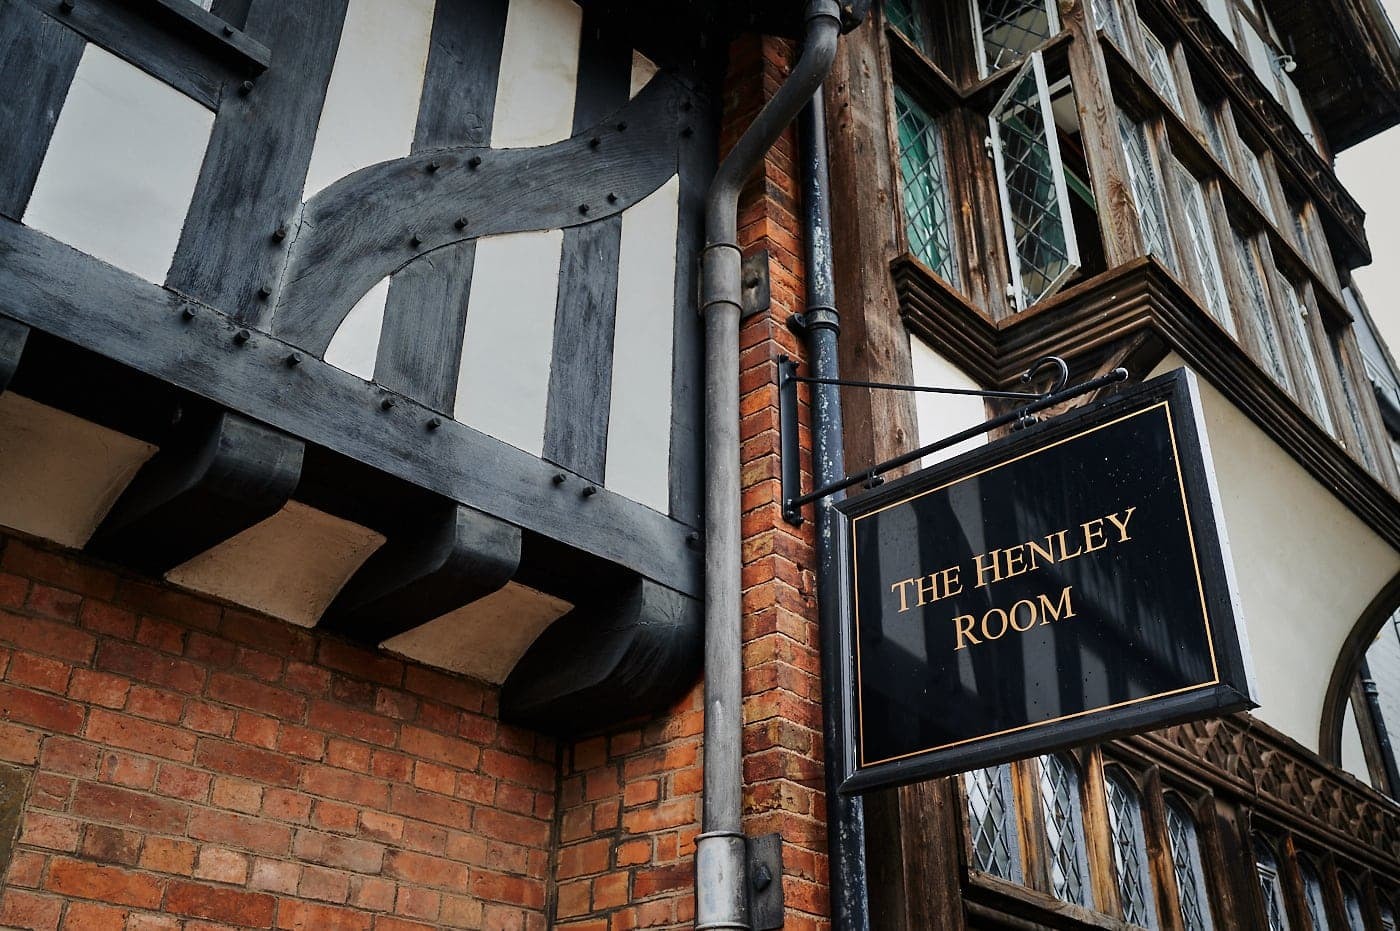 The Henley Room in Stratford-upon-Avon